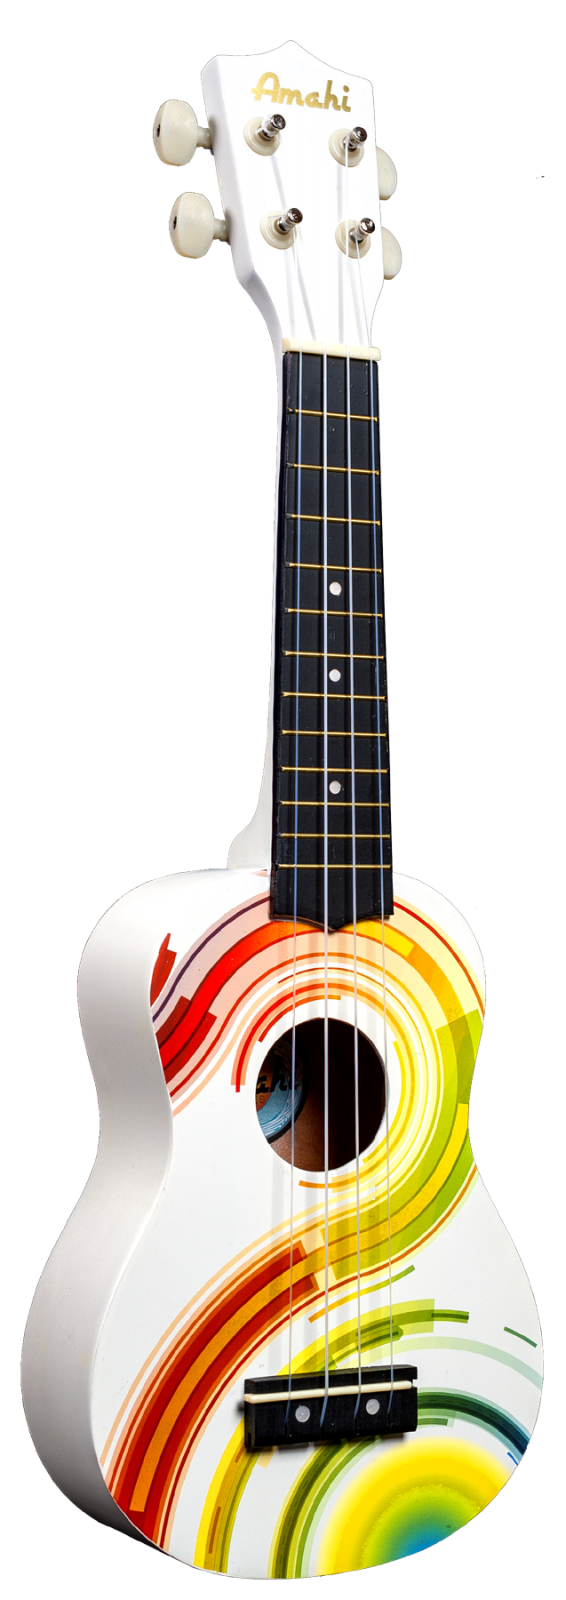 DDUK-7 White with Colored Pinstripe Swirls